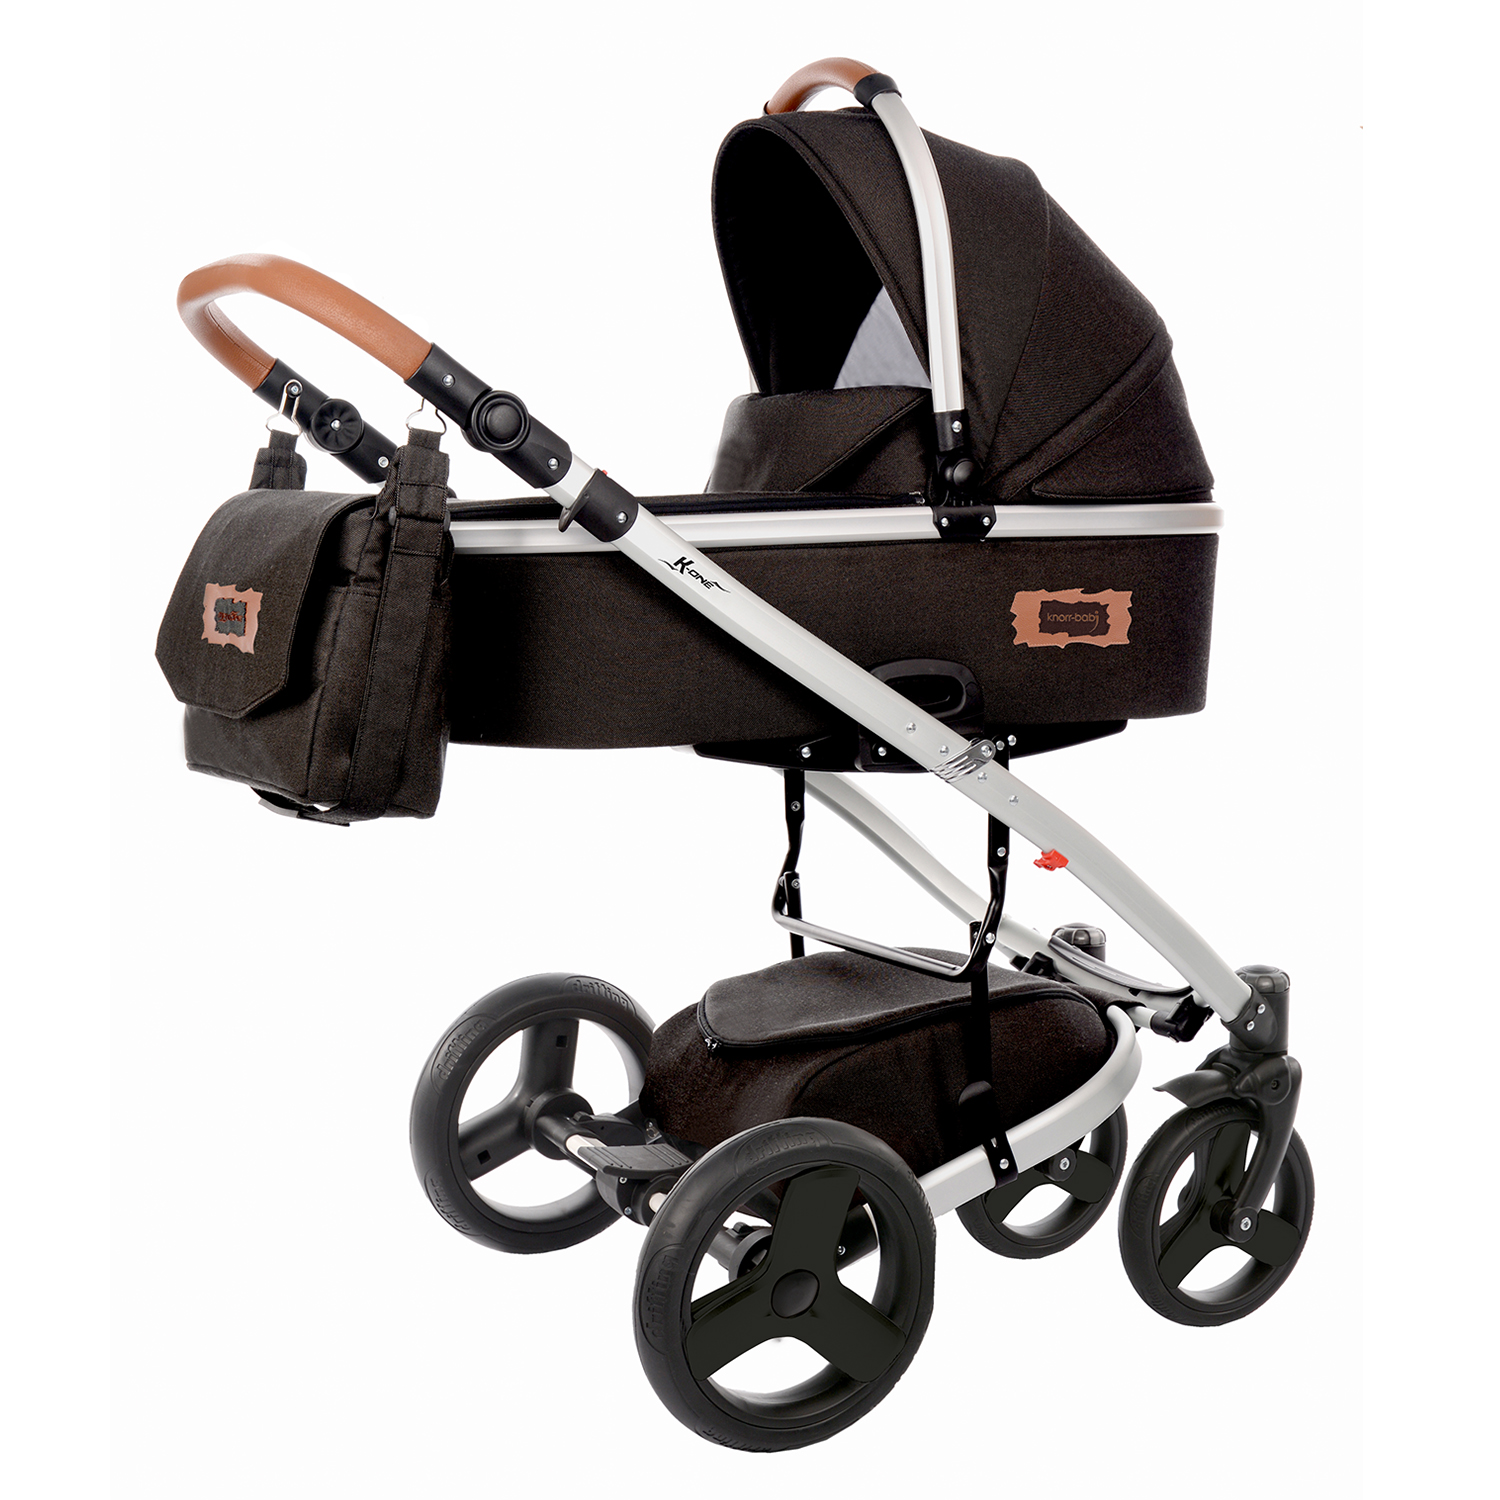 Kinderwagen Online Shop : knorr baby gmbh kombi kinderwagen k one schwarz ~ Watch28wear.com Haus und Dekorationen